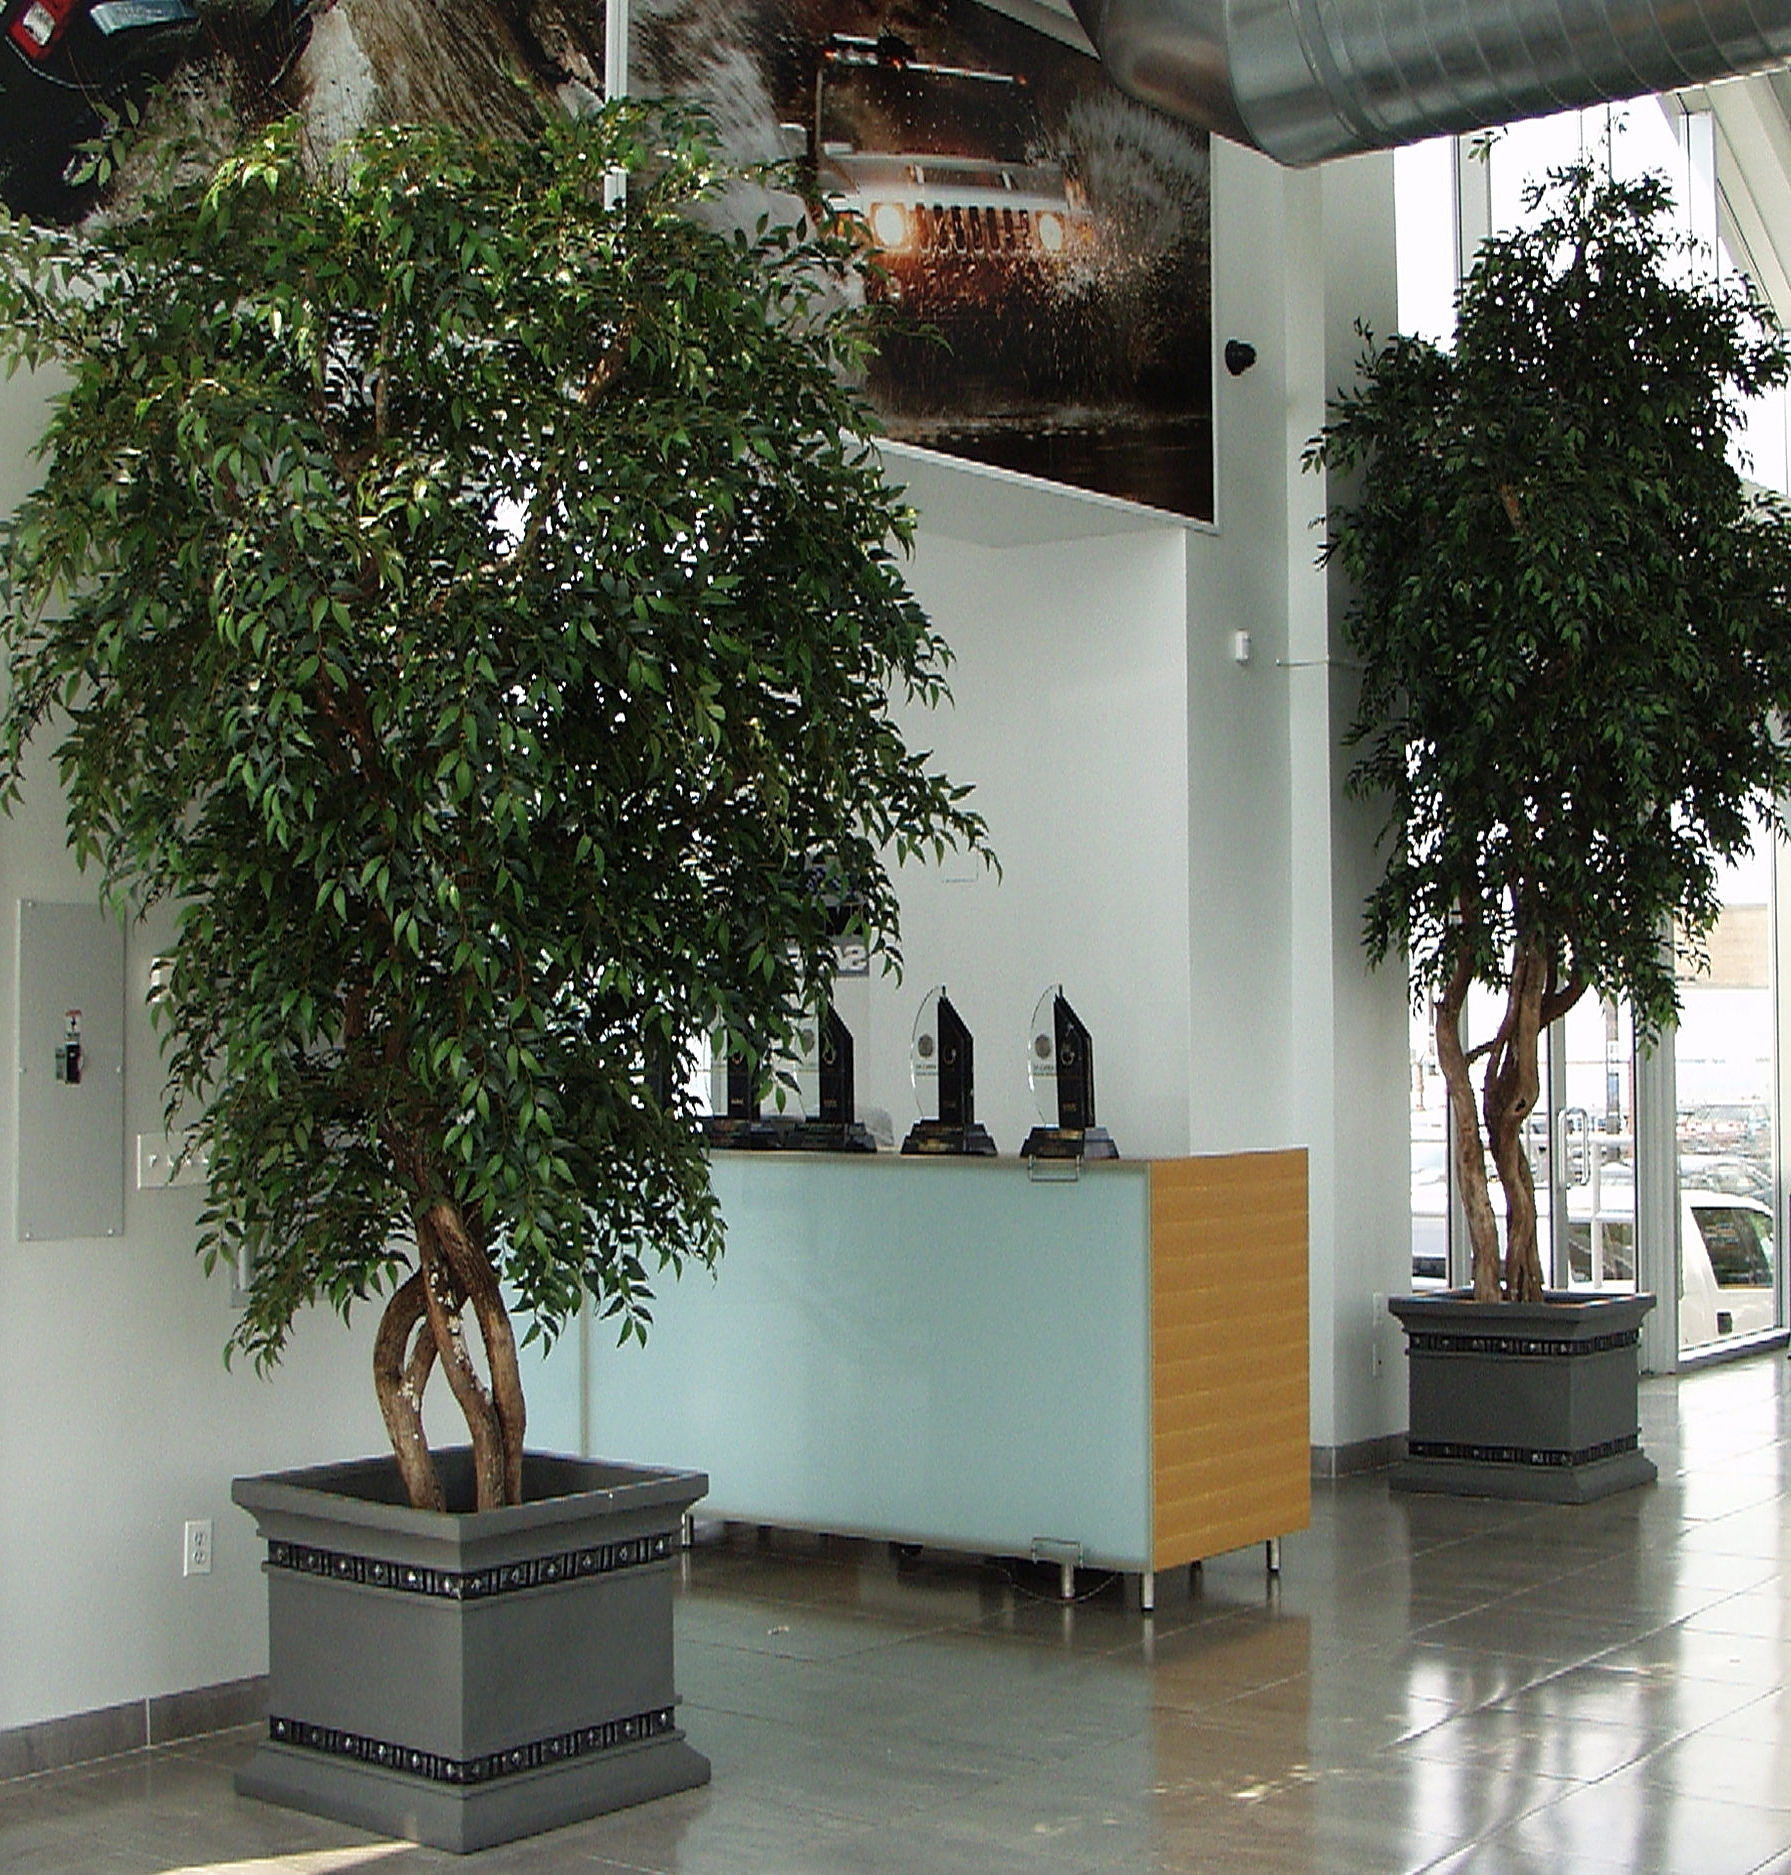 Trees from Citi Cad & Hummr.jpg